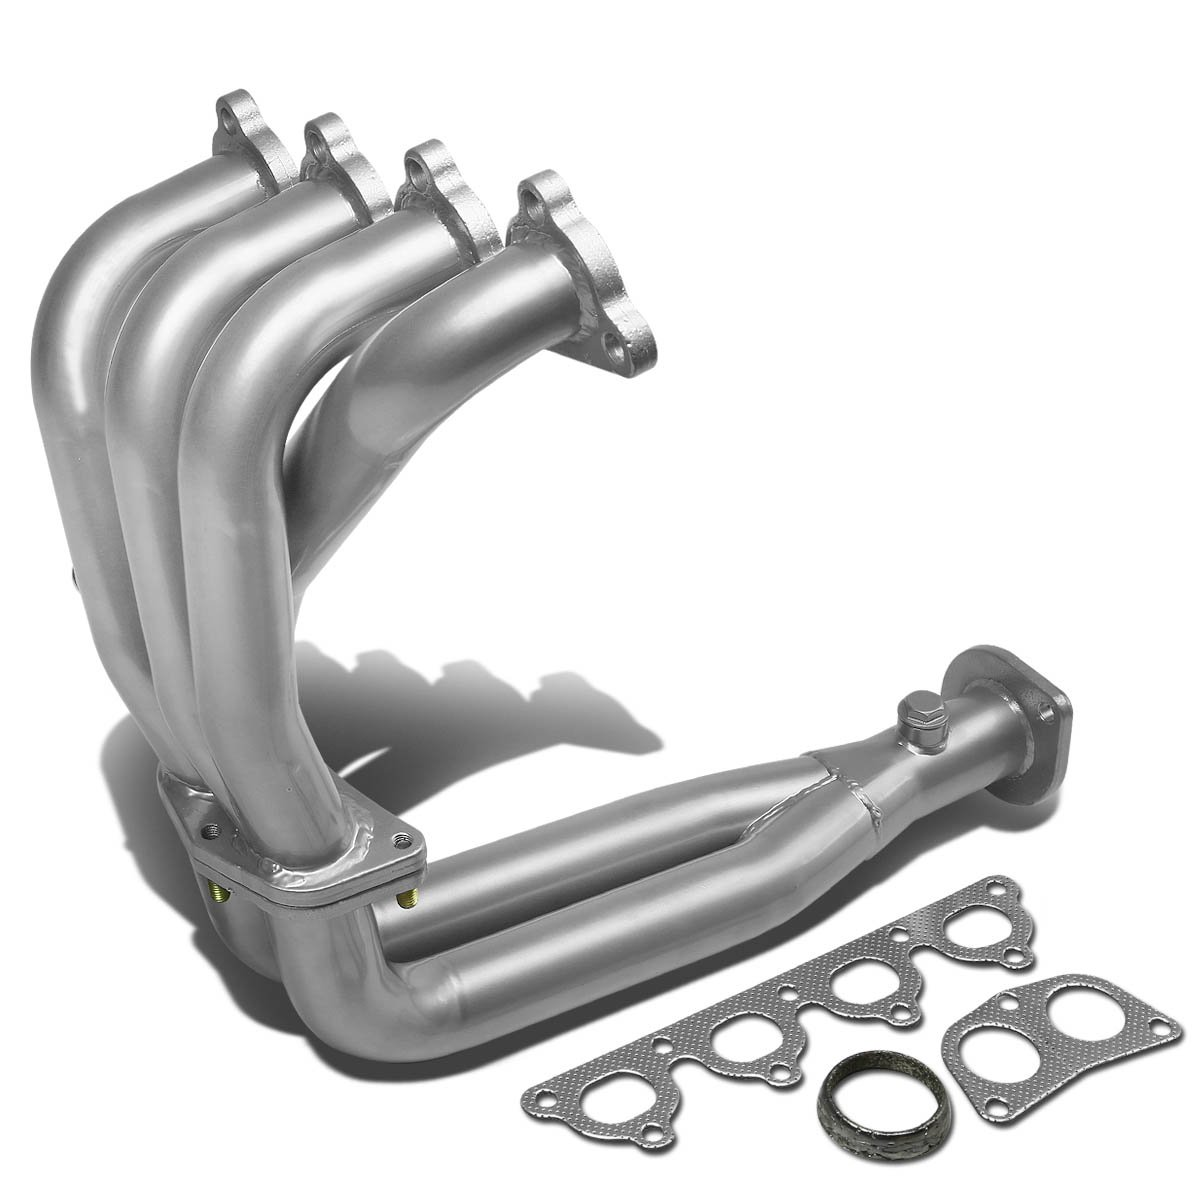 For Honda Civic/CRX/Del Sol Performance 4-2-1 Design Stainless Steel Exhaust Header Kit (Silver Paint Finished)